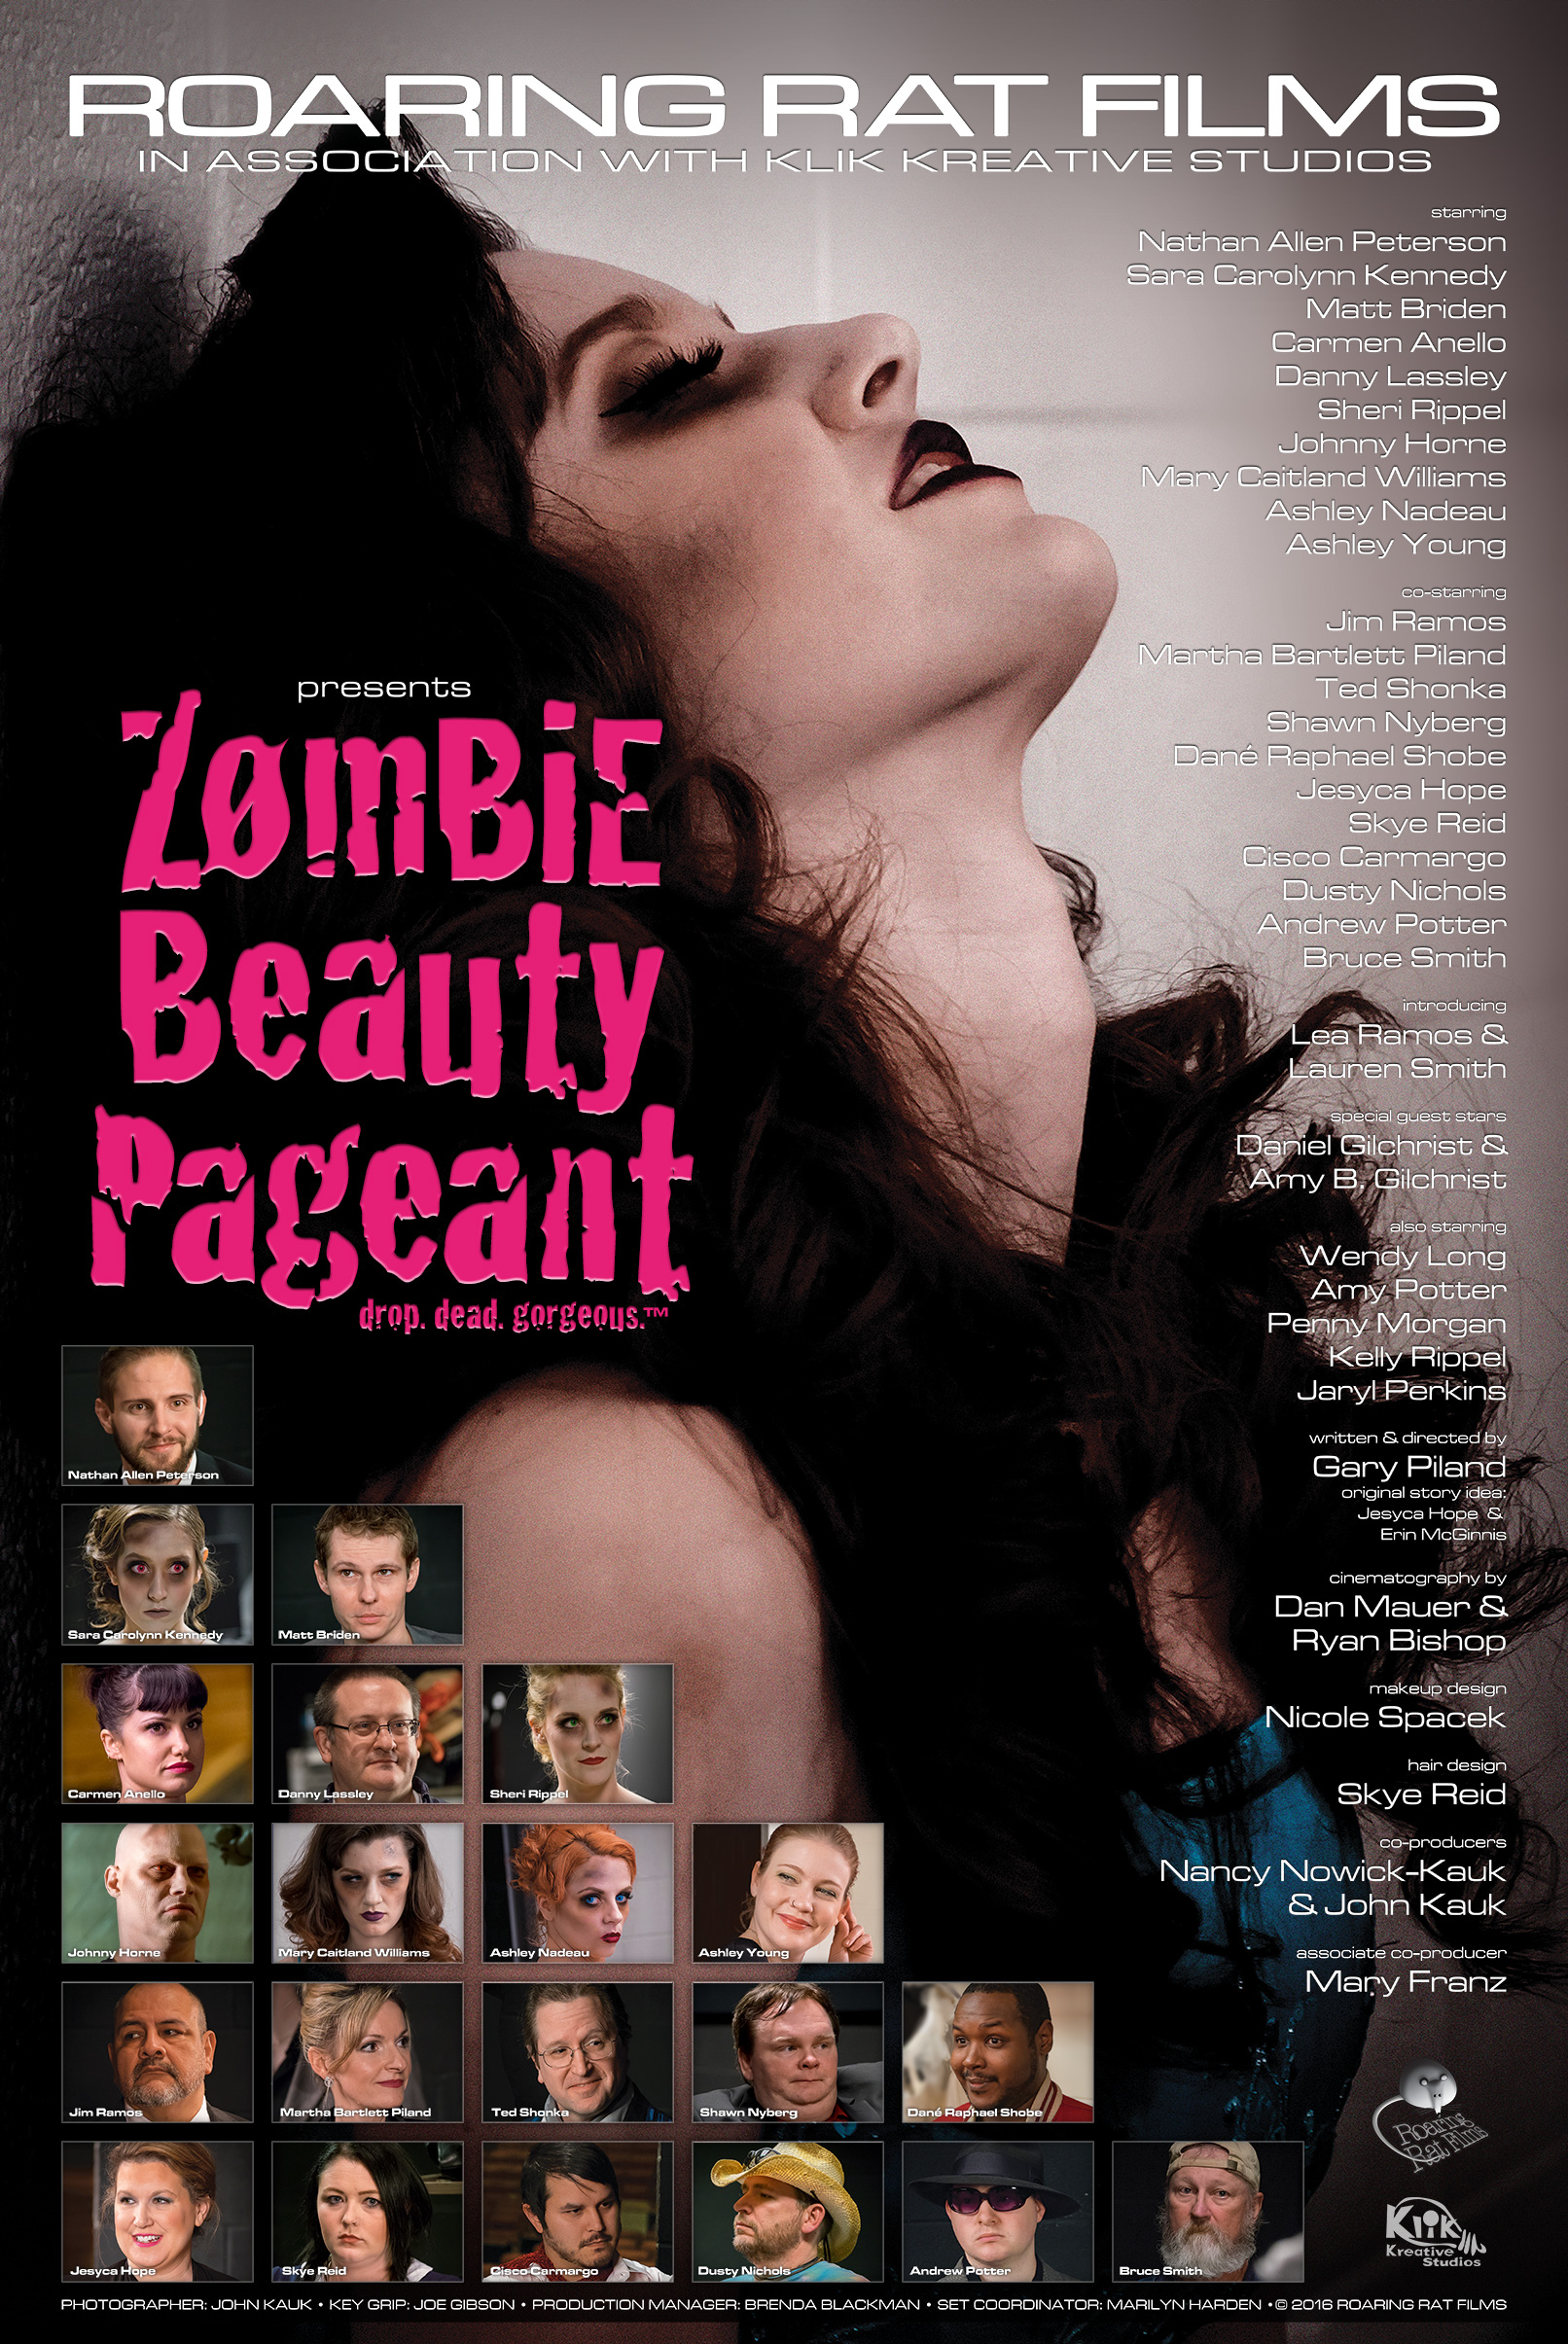 """Zombie Beauty Pageant - Drop. Dead. Gorgeous."" Poster"